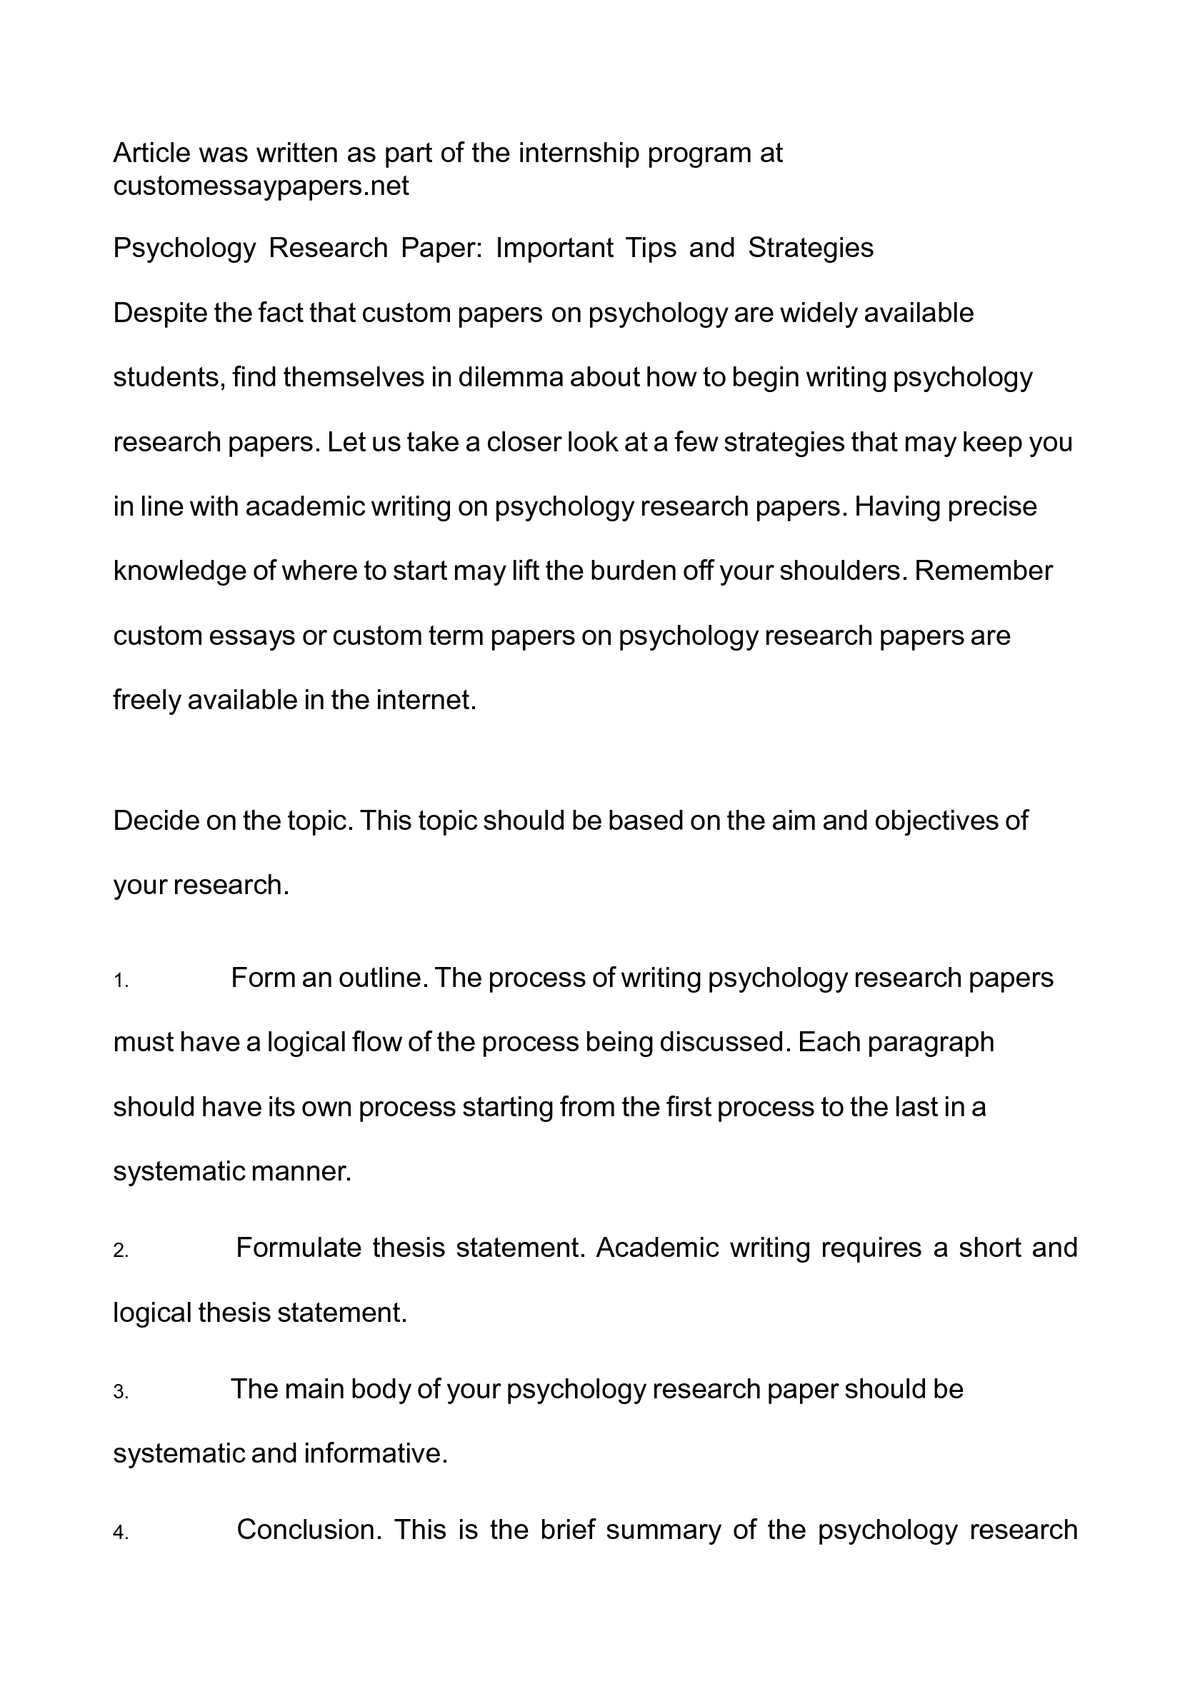 017 P1 Research Paper Psychology Topics Awesome List Topic Ideas Full